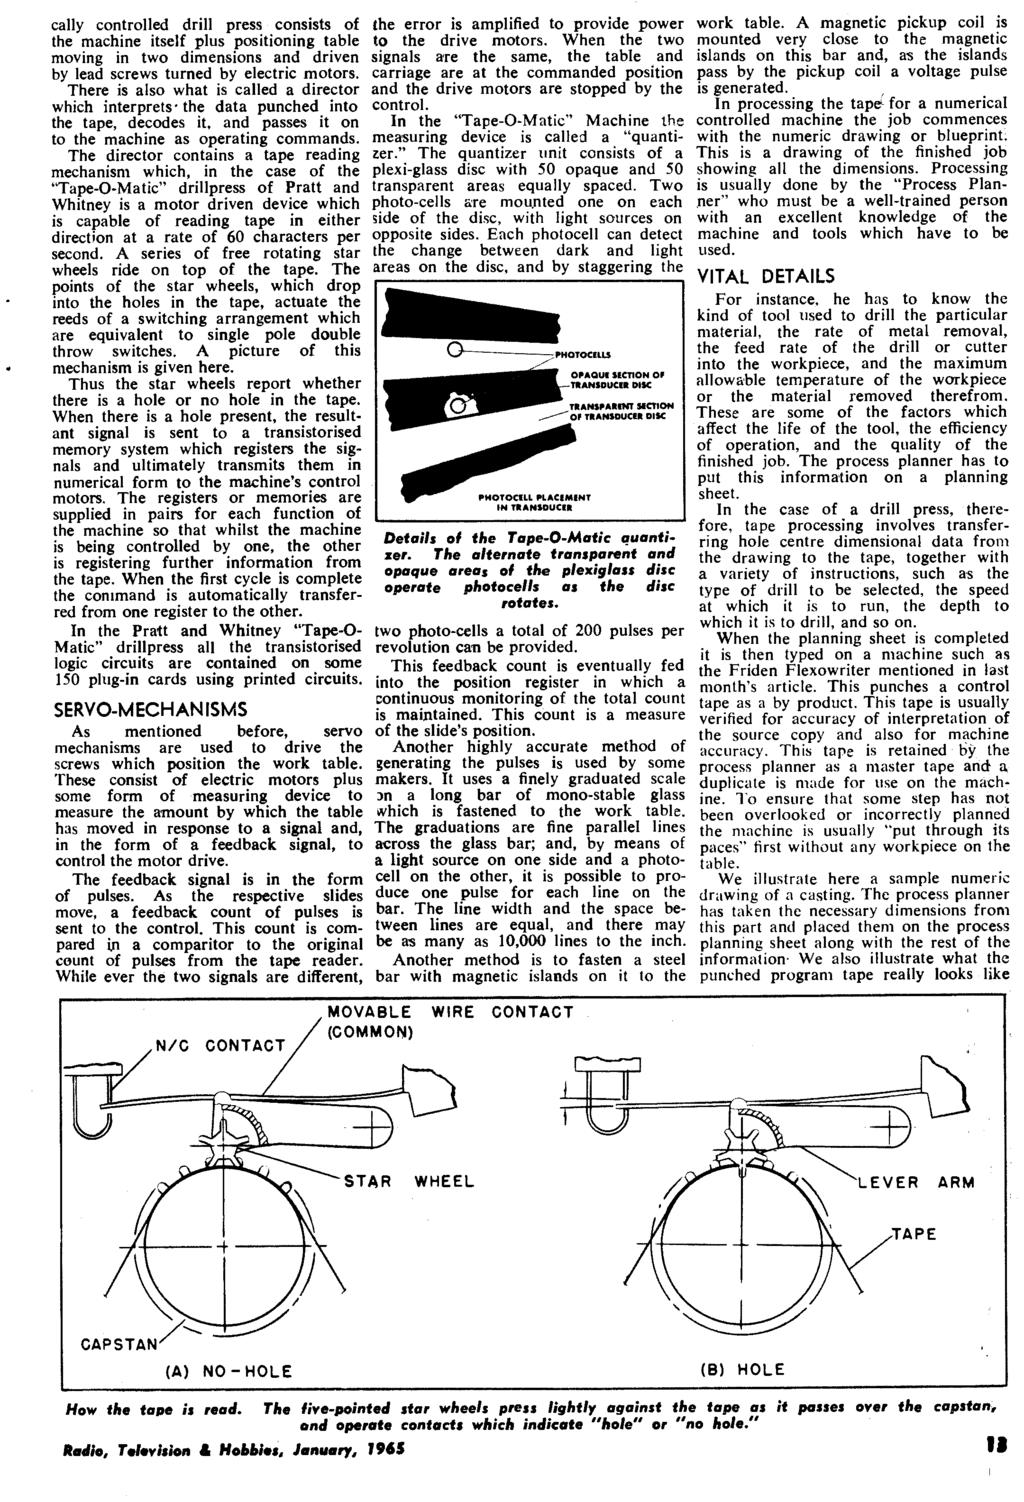 January 1965 Radio 26 Vol No 10 Television Panther 110 Rx5 Wiring Diagram Cally Controlled Drill Press Consists Of The Machine Itself Plus Positioning Table Moving In Two Dimensions